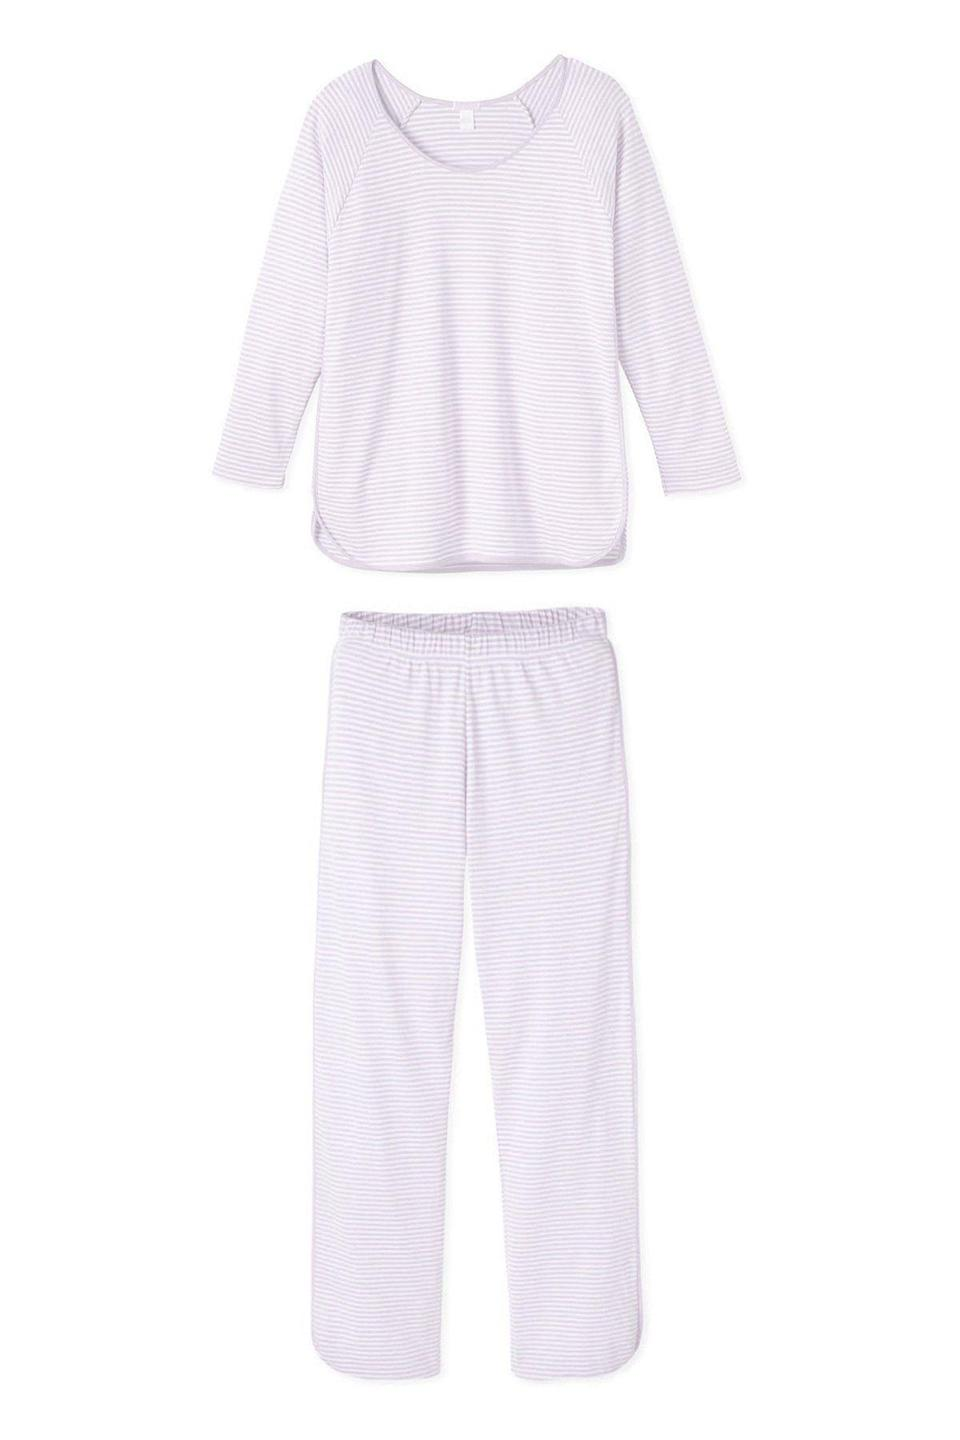 "<p>lakepajamas.com</p><p><strong>$114.00</strong></p><p><a href=""https://go.redirectingat.com?id=74968X1596630&url=https%3A%2F%2Flakepajamas.com%2Fcollections%2Fpants-sets%2Fproducts%2Flavender-long-long-set&sref=https%3A%2F%2Fwww.townandcountrymag.com%2Fstyle%2Fhome-decor%2Fg33933277%2Fcozy-gifts%2F"" rel=""nofollow noopener"" target=""_blank"" data-ylk=""slk:Shop Now"" class=""link rapid-noclick-resp"">Shop Now</a></p><p>The best gifts are little luxuries the recipient would never buy for themselves. Lake's super-soft Pima pajama sets certainly fall into that category. </p>"